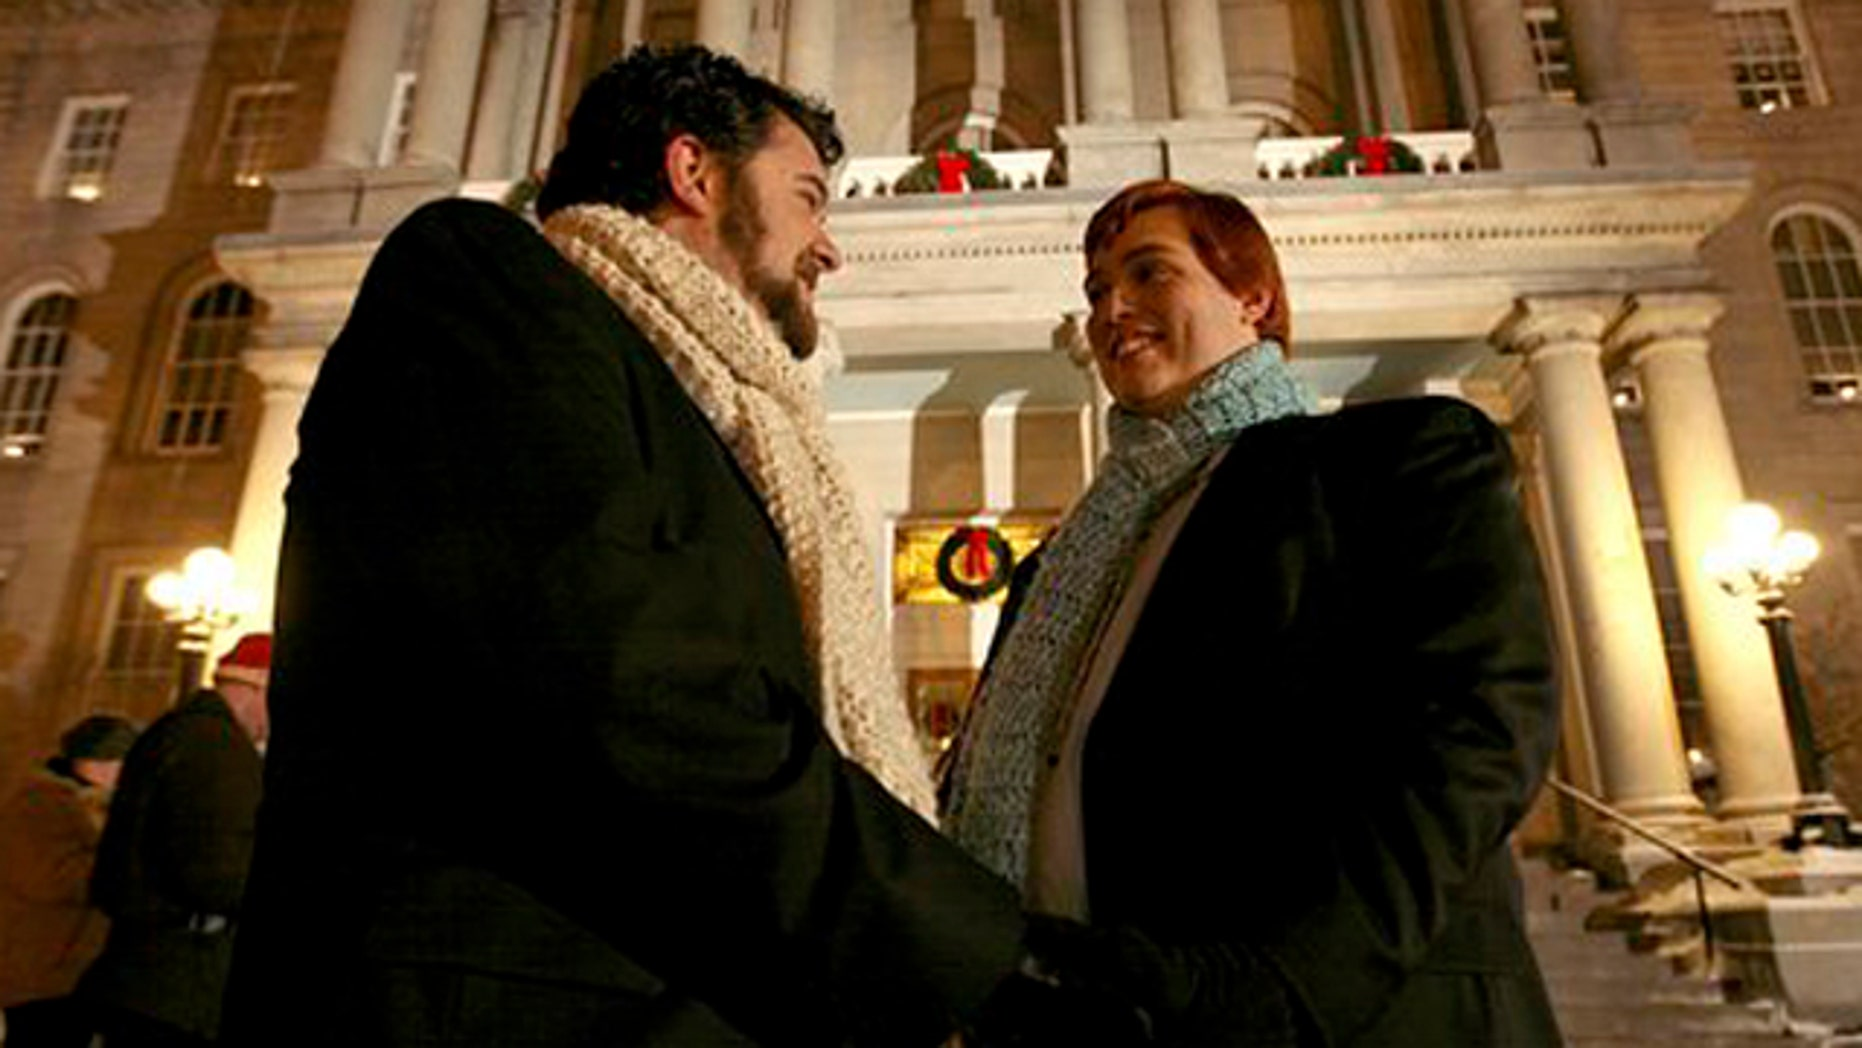 FILE - Bill Gaudet, left, and Ramon Gaudet, right, wait to be wed in front of New Hampshire's Statehouse  in Concord, N.H.